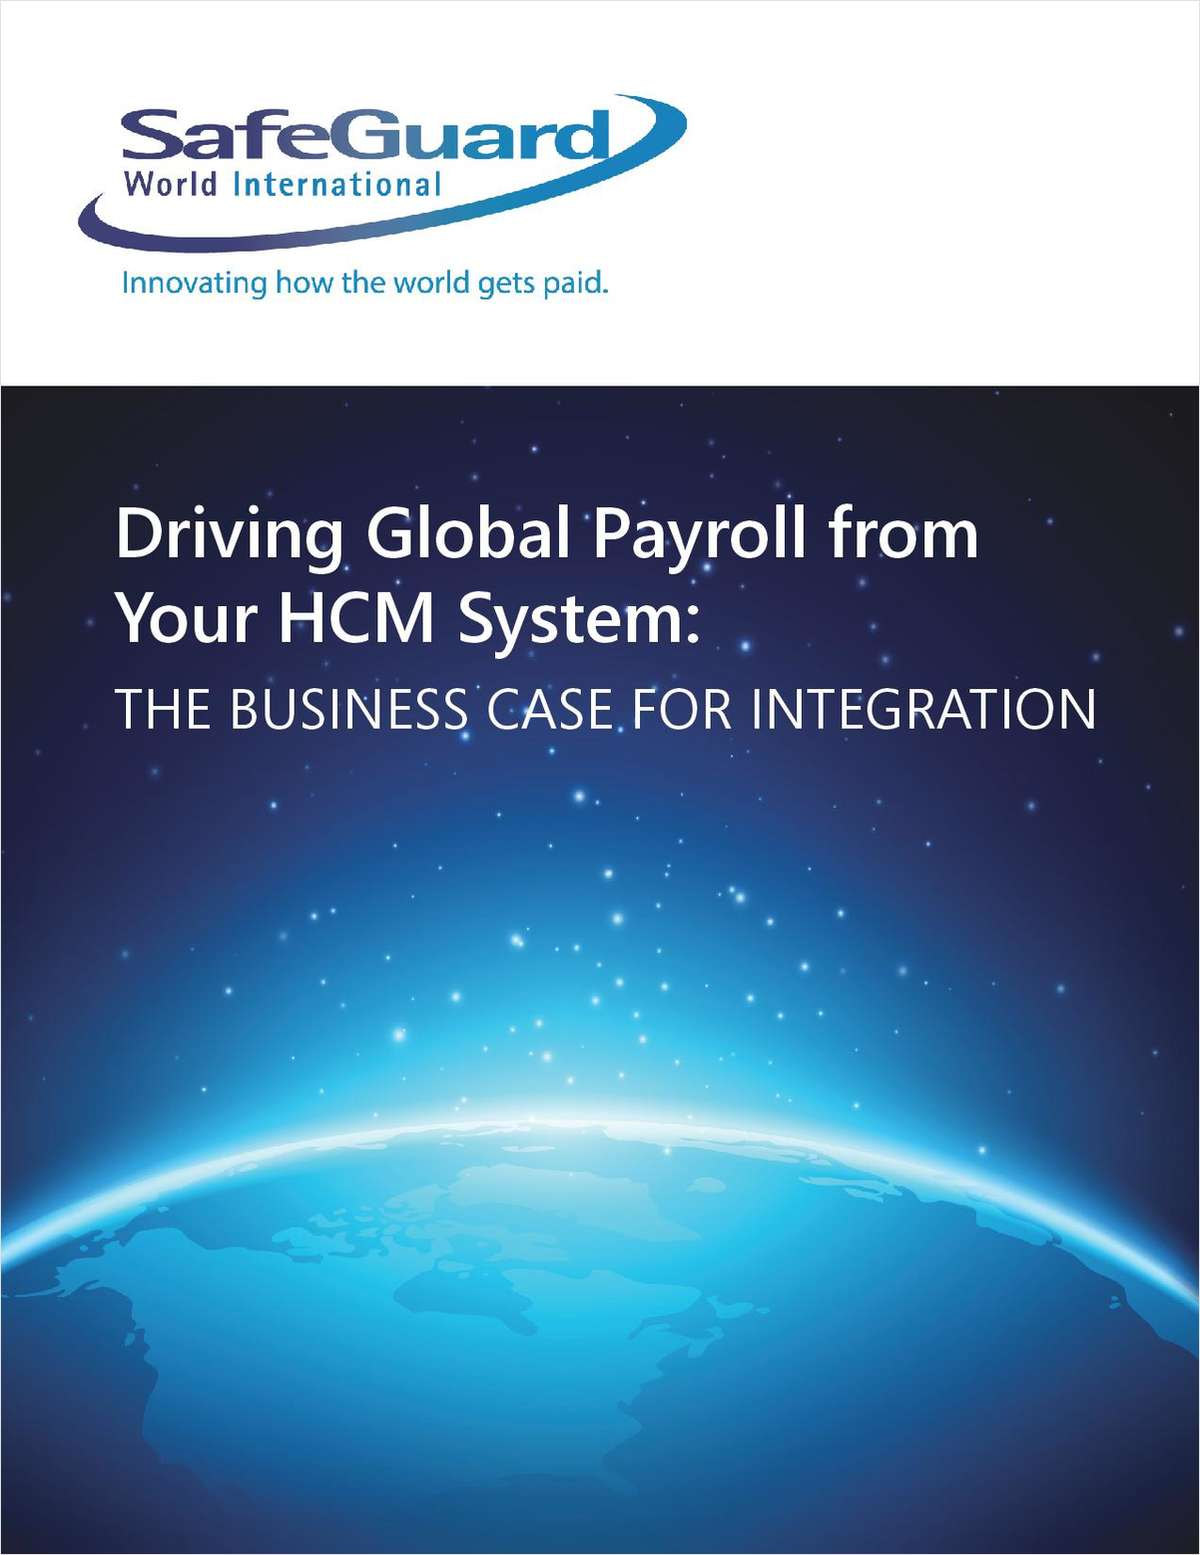 Driving Global Payroll from Your HCM System